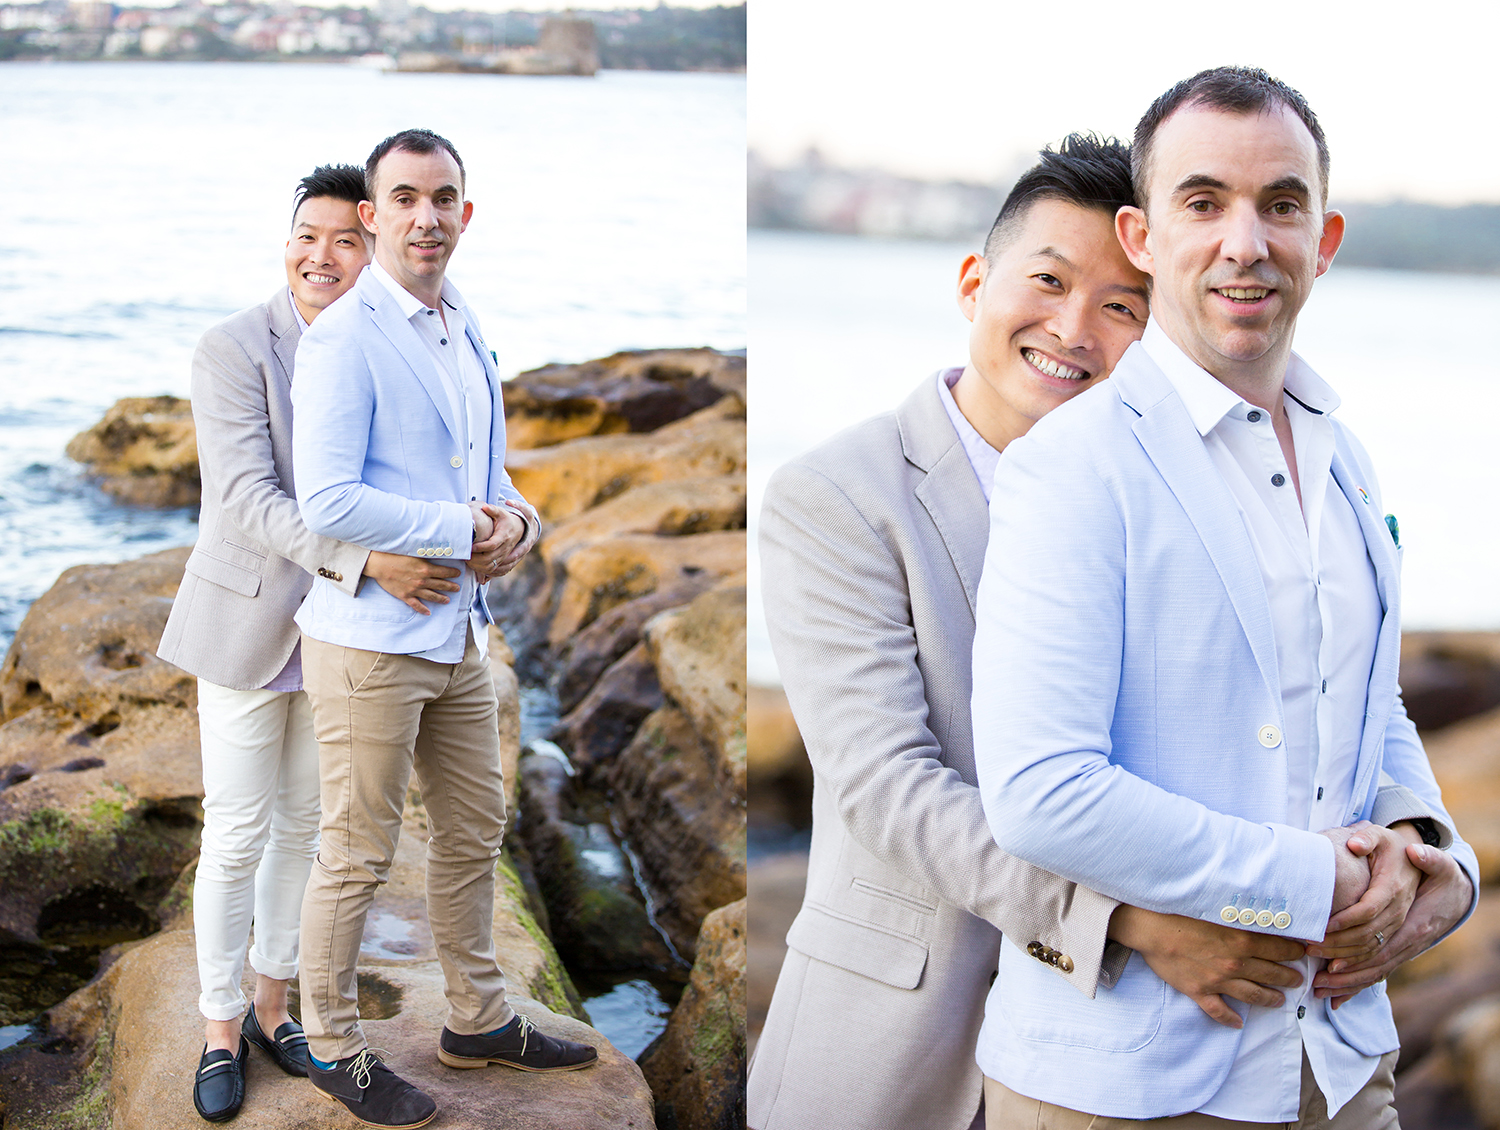 Sydney Gay Wedding Photographer - Jennifer Lam Photography (62).jpg